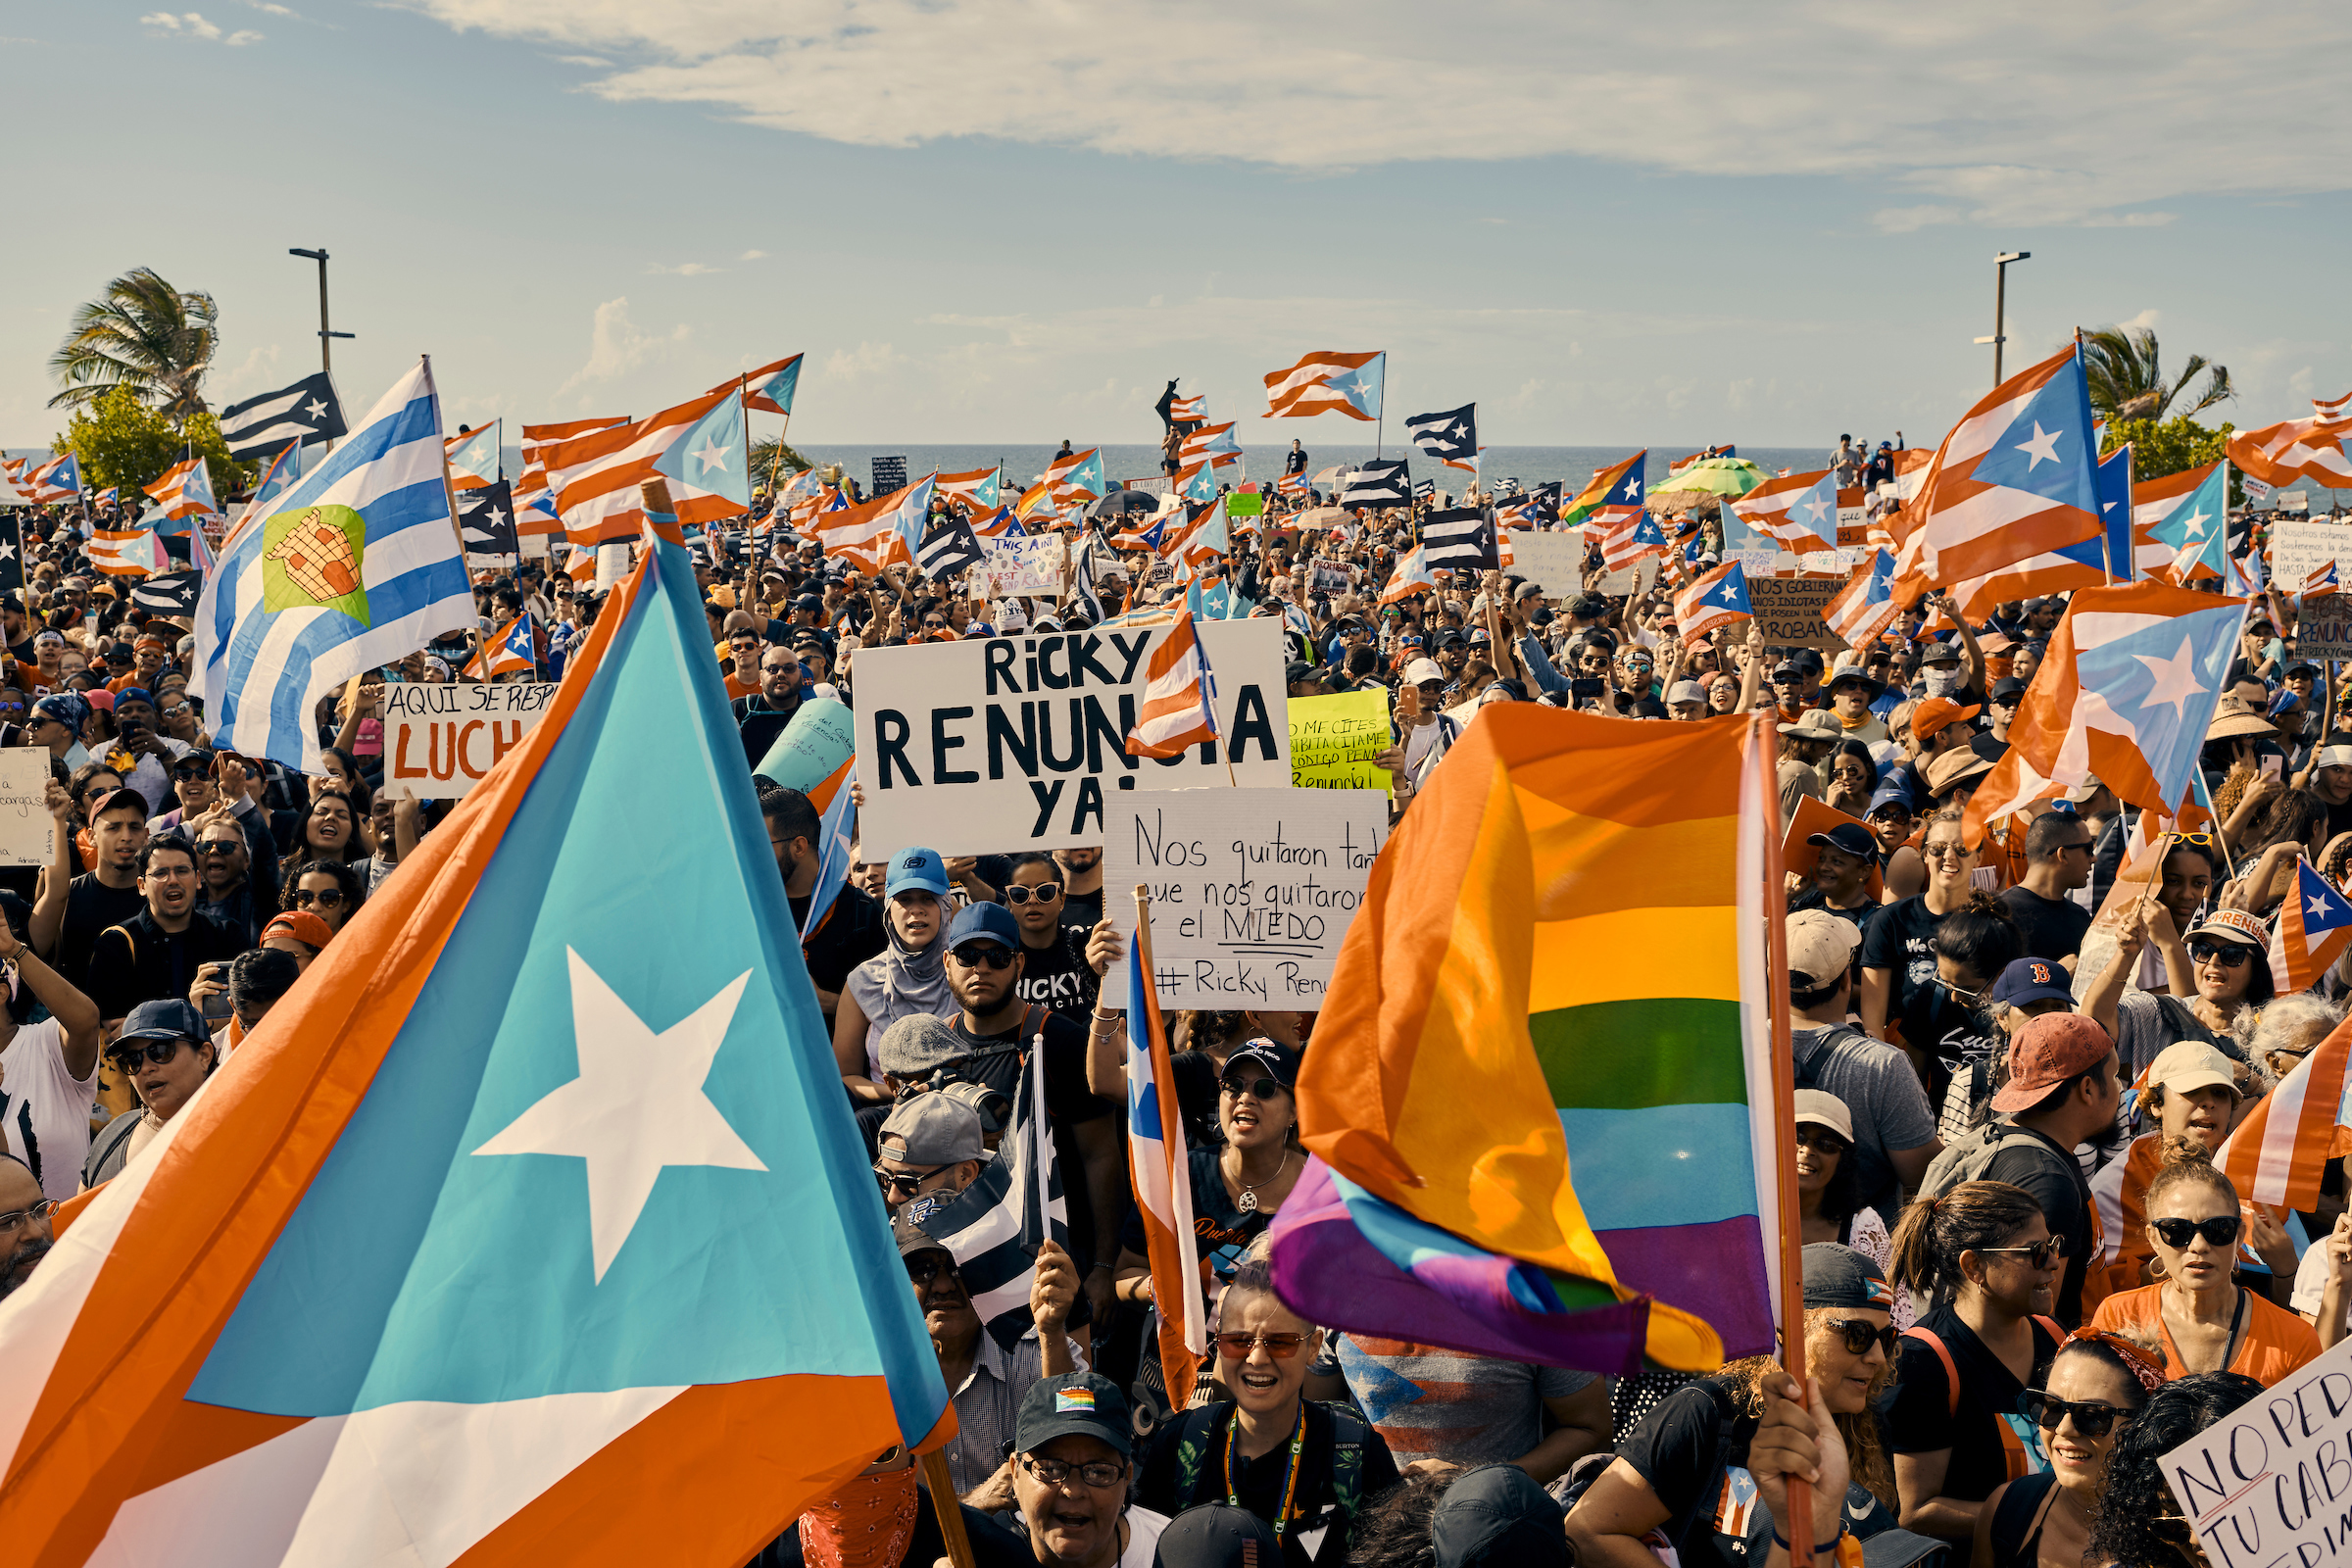 Protesters demanding #RickyRenuncia—a hashtagged demand for the governor's resignation—took to the streets of San Juan on July 17, 2019.